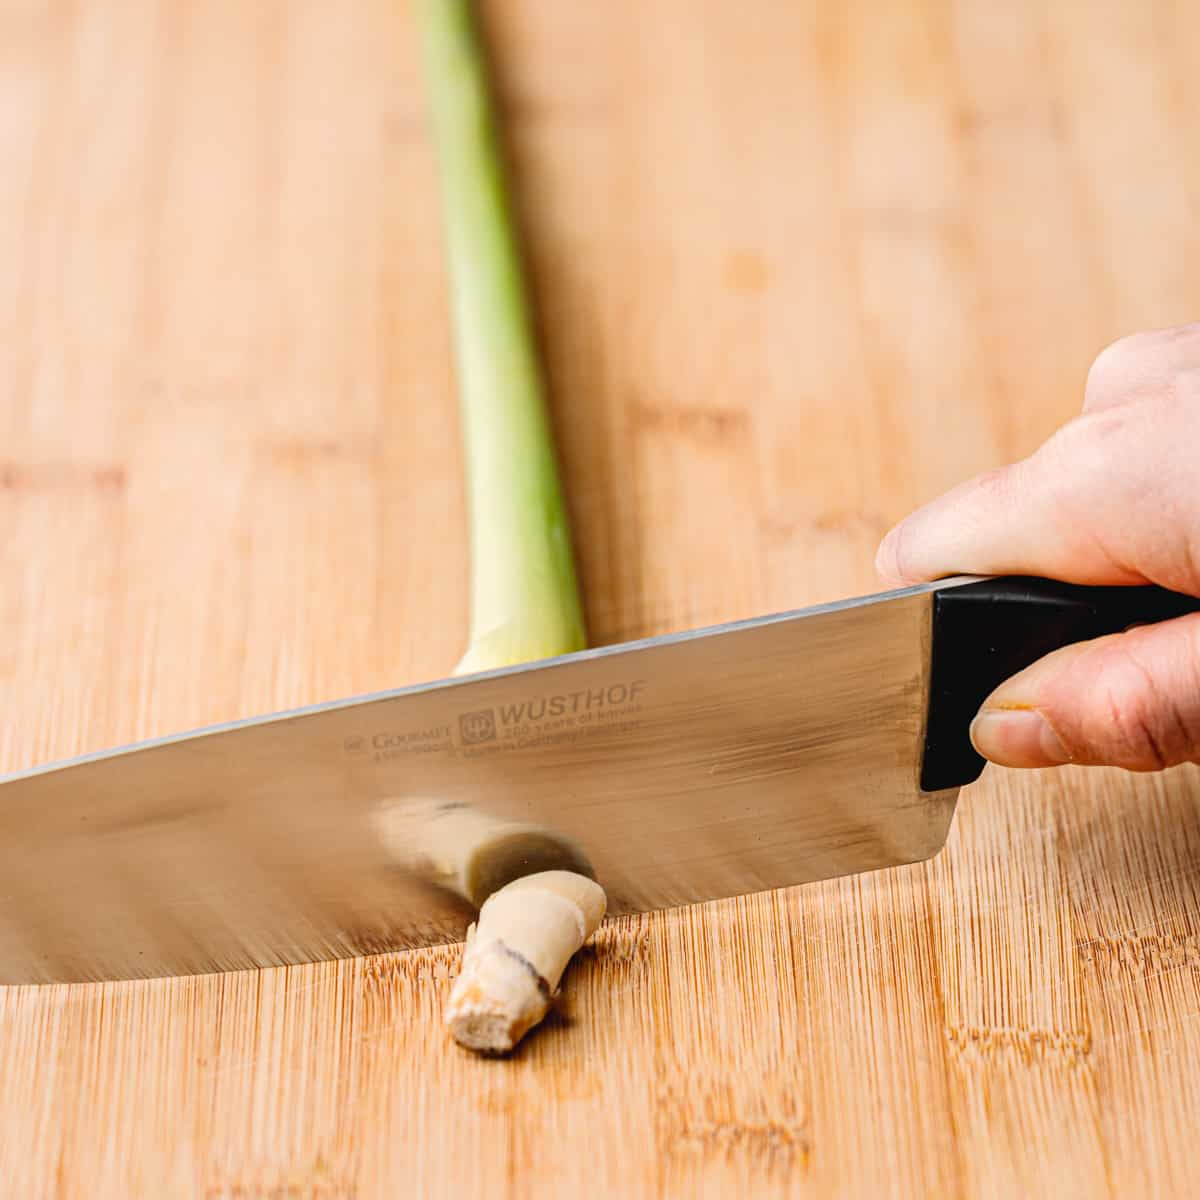 How to Cut Lemongrass